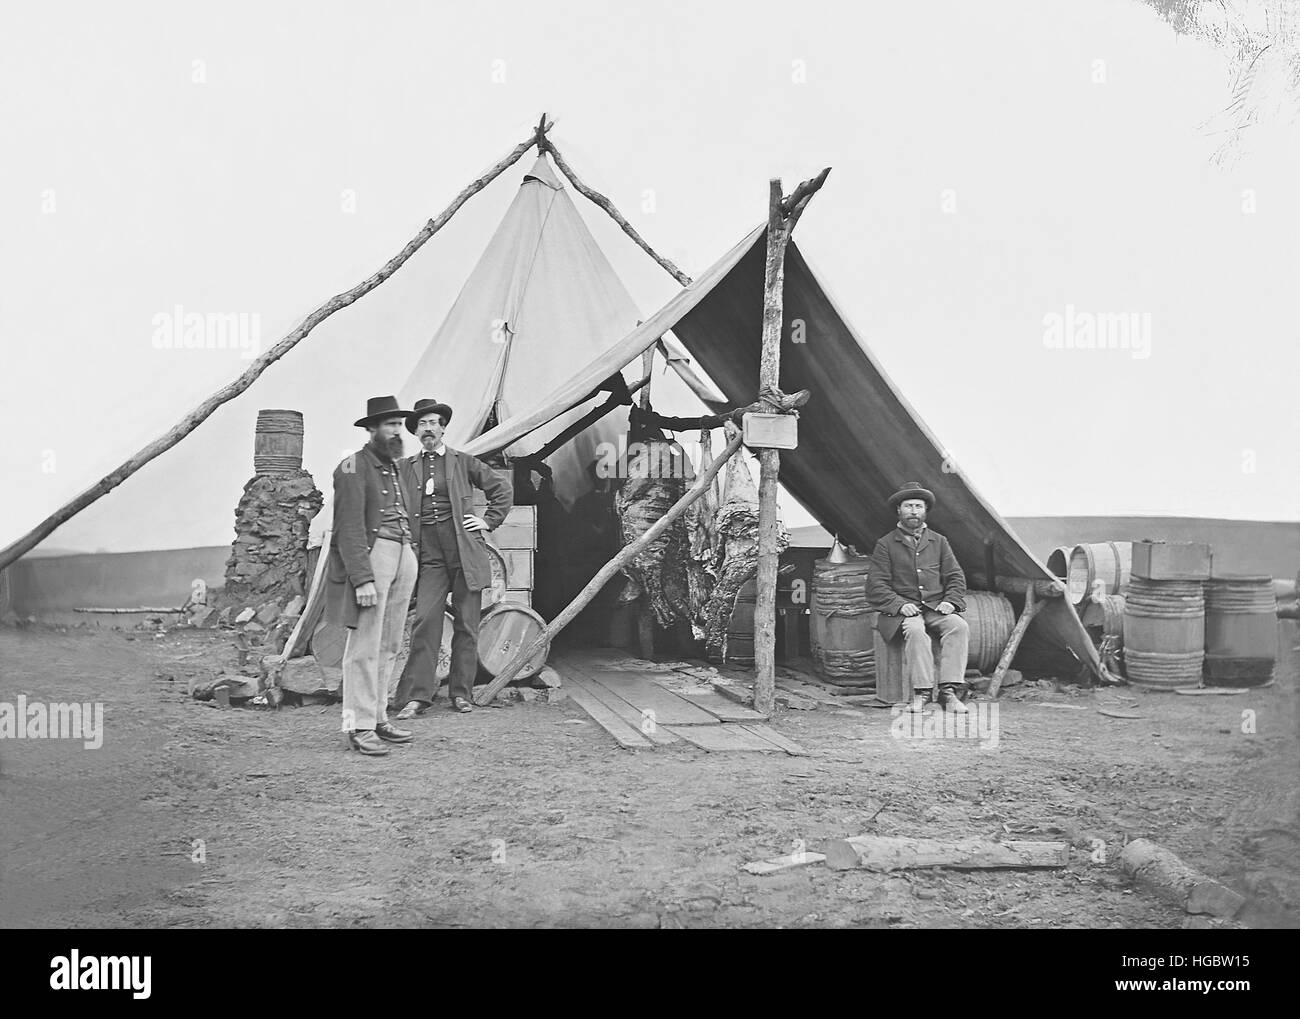 Dressed beef hanging in tent during American Civil War. - Stock Photo